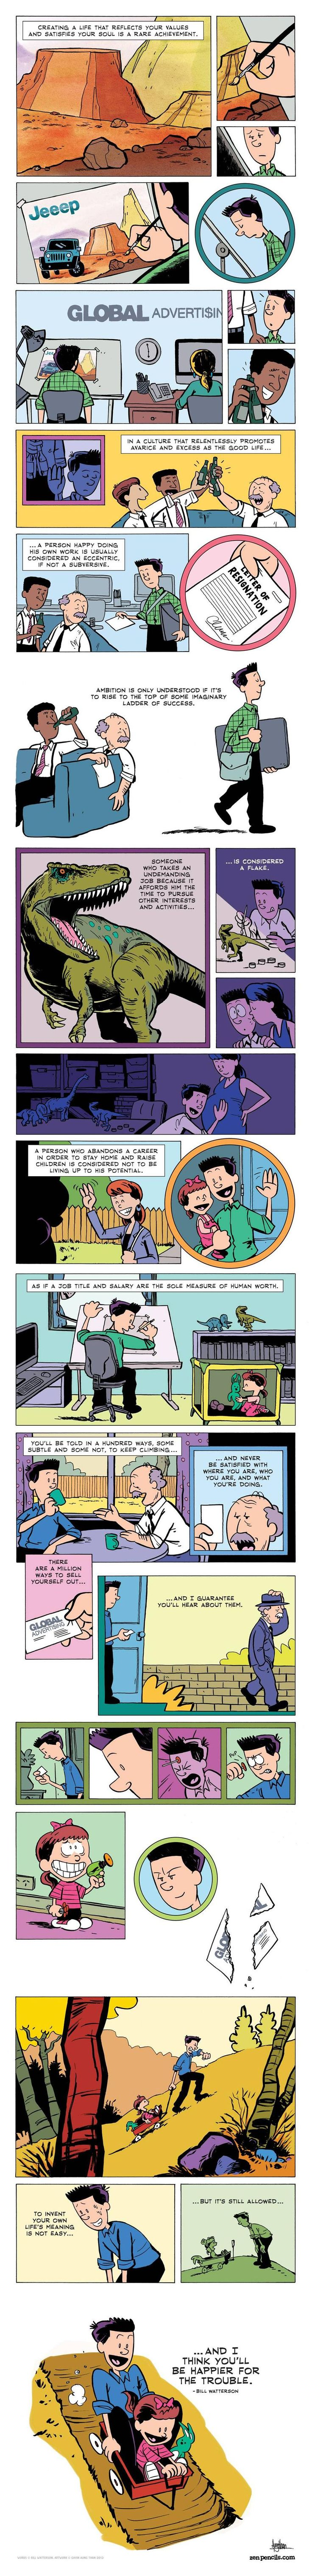 An incredible comic by Bill Watterson about the challenges and rewards of inventing your own life's meaning.